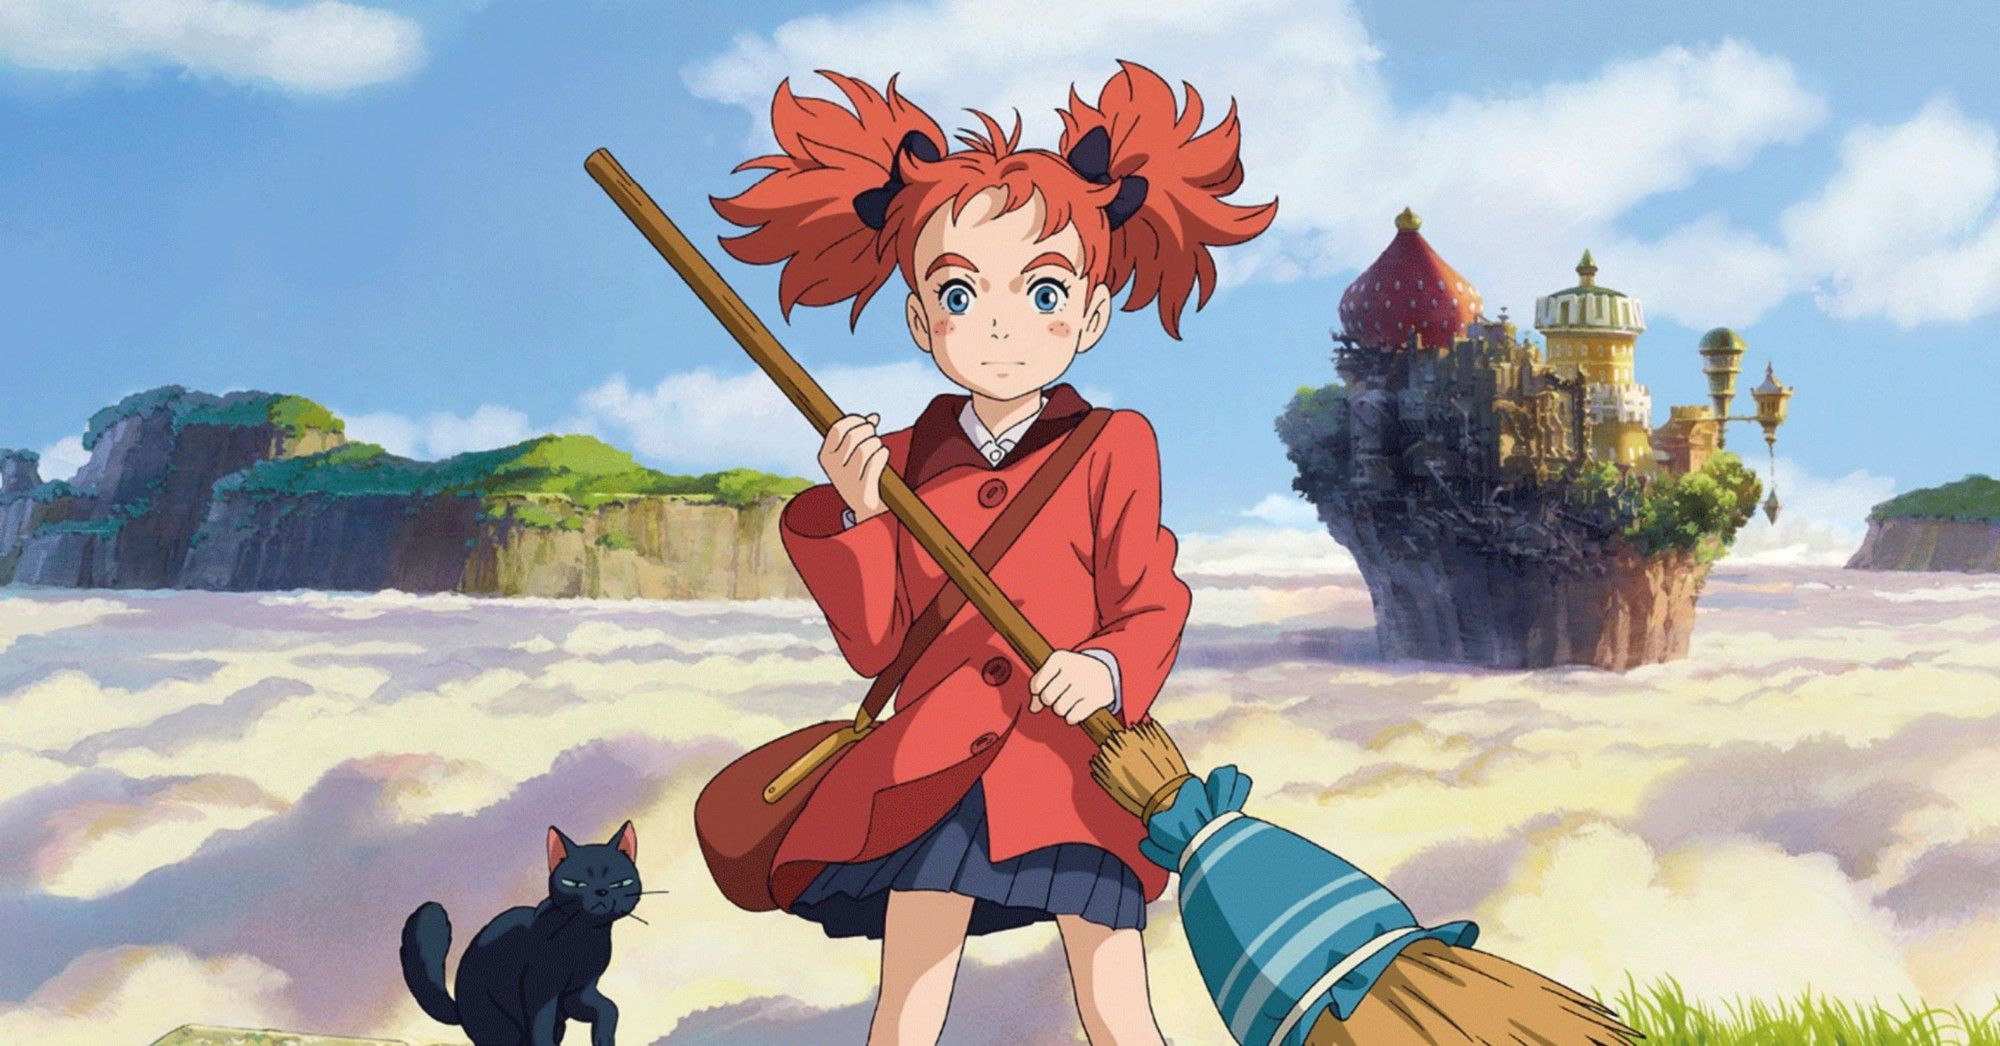 Review Mary and the Witchs Flower is a charming fairytale